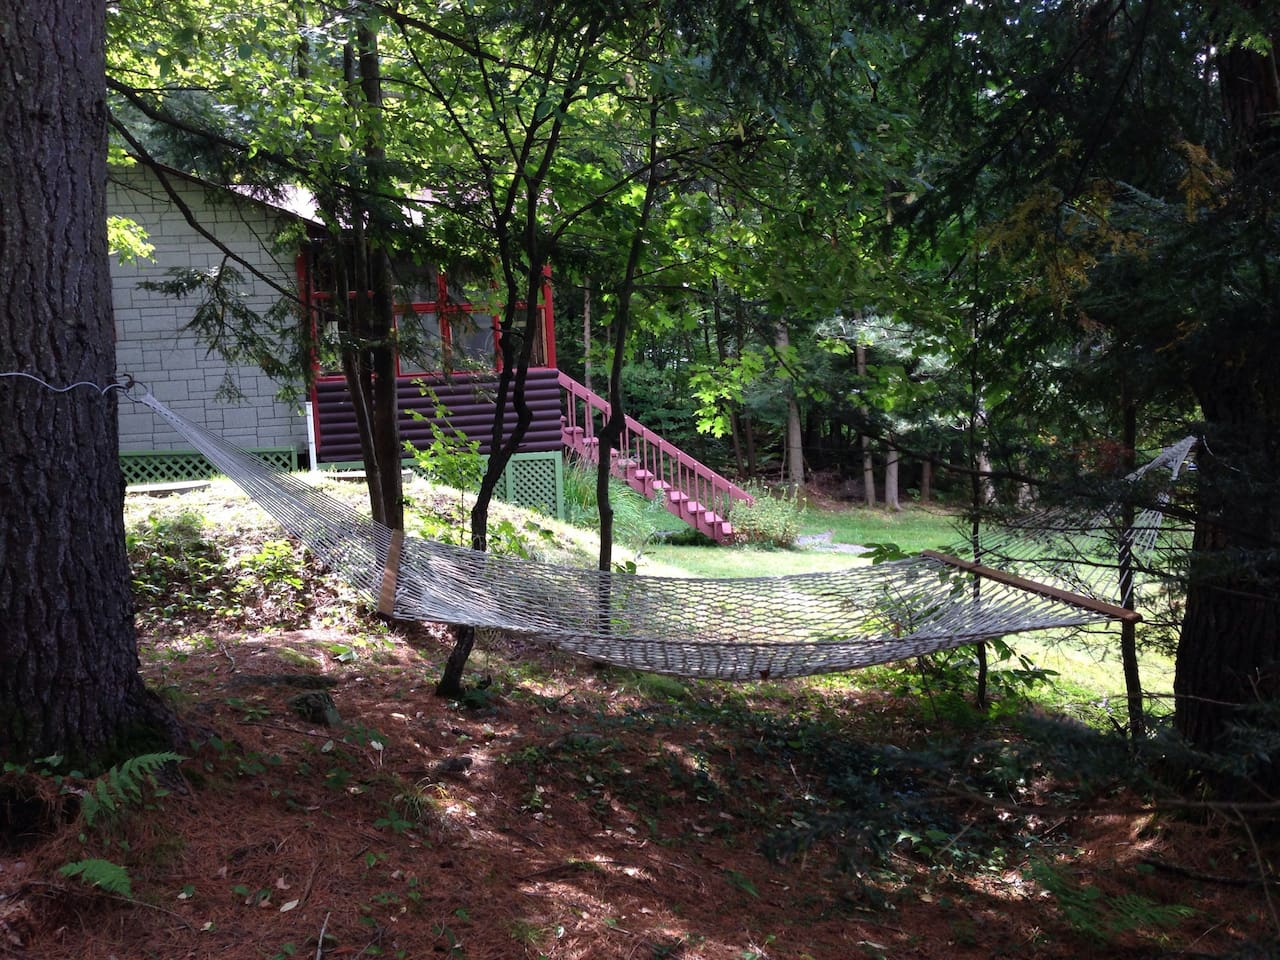 There is a hammock, horeshoe pitch and small swings